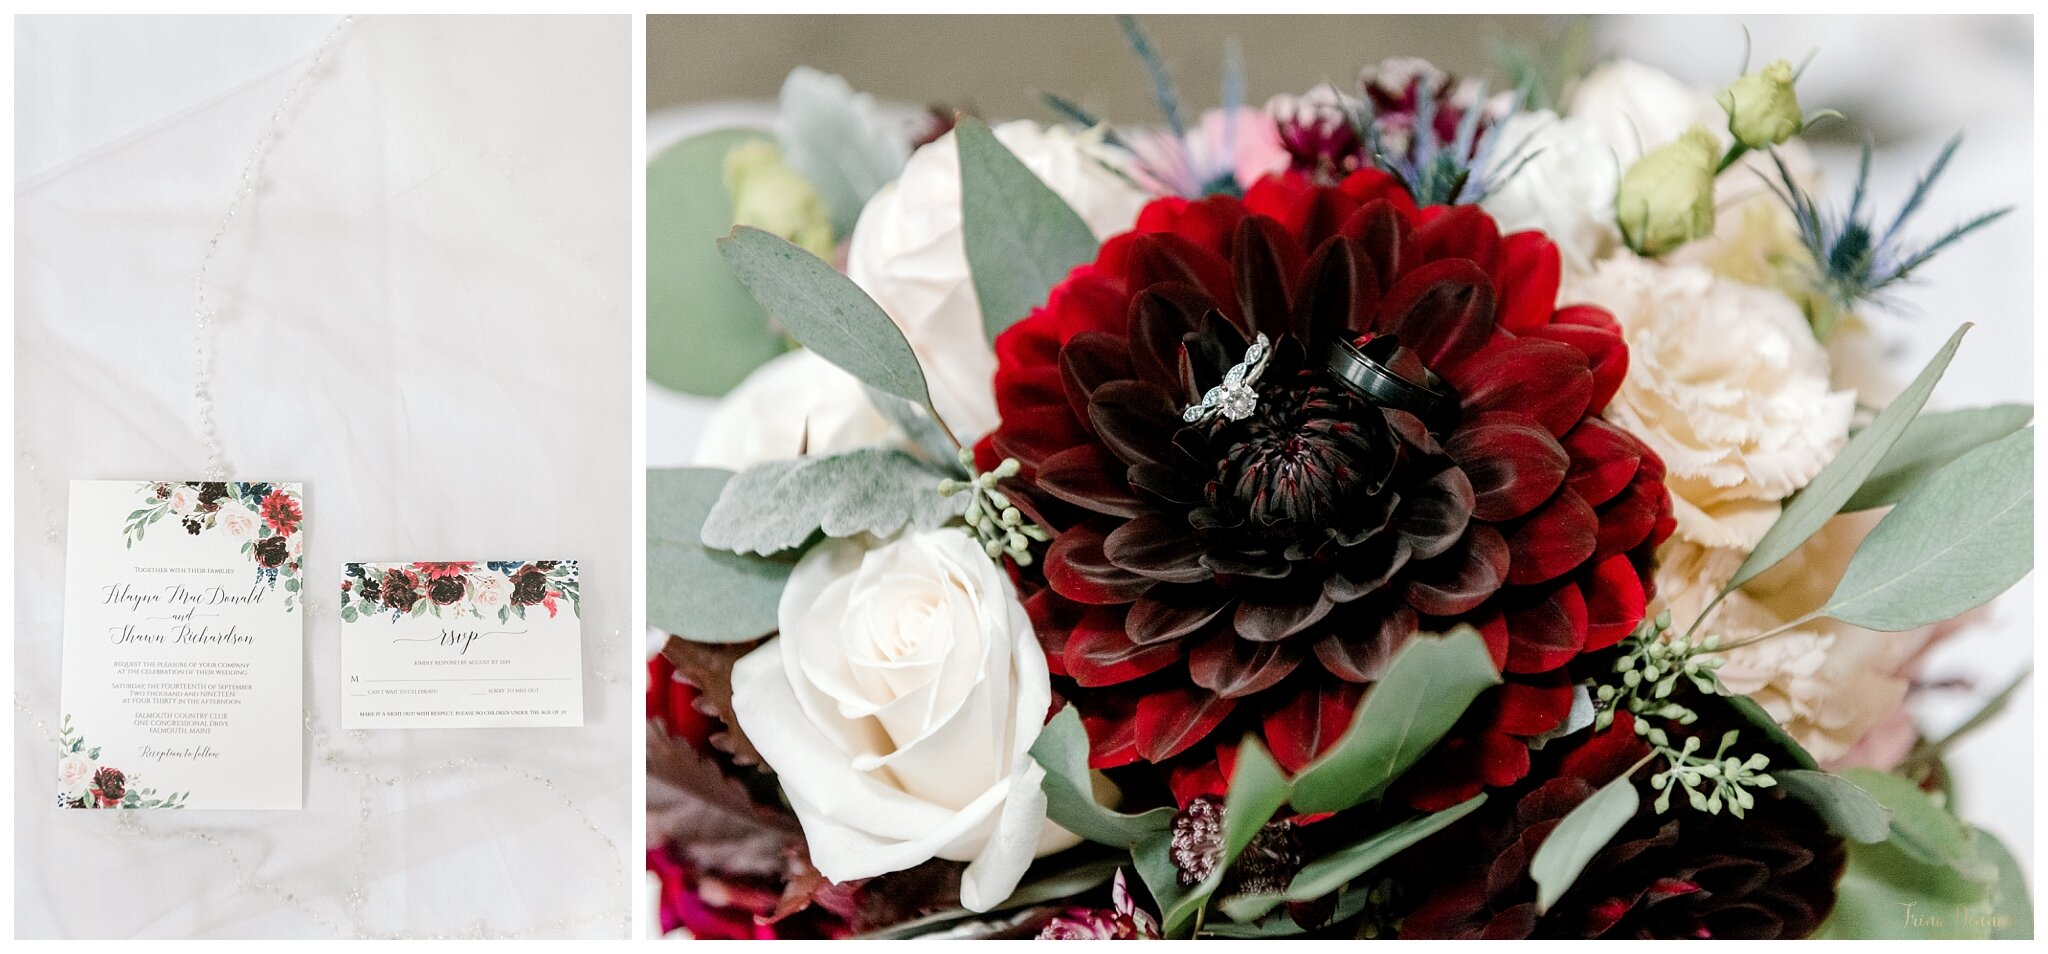 Campbell's Floral Design Maine Wedding Florist Flowers - Katey Campbell